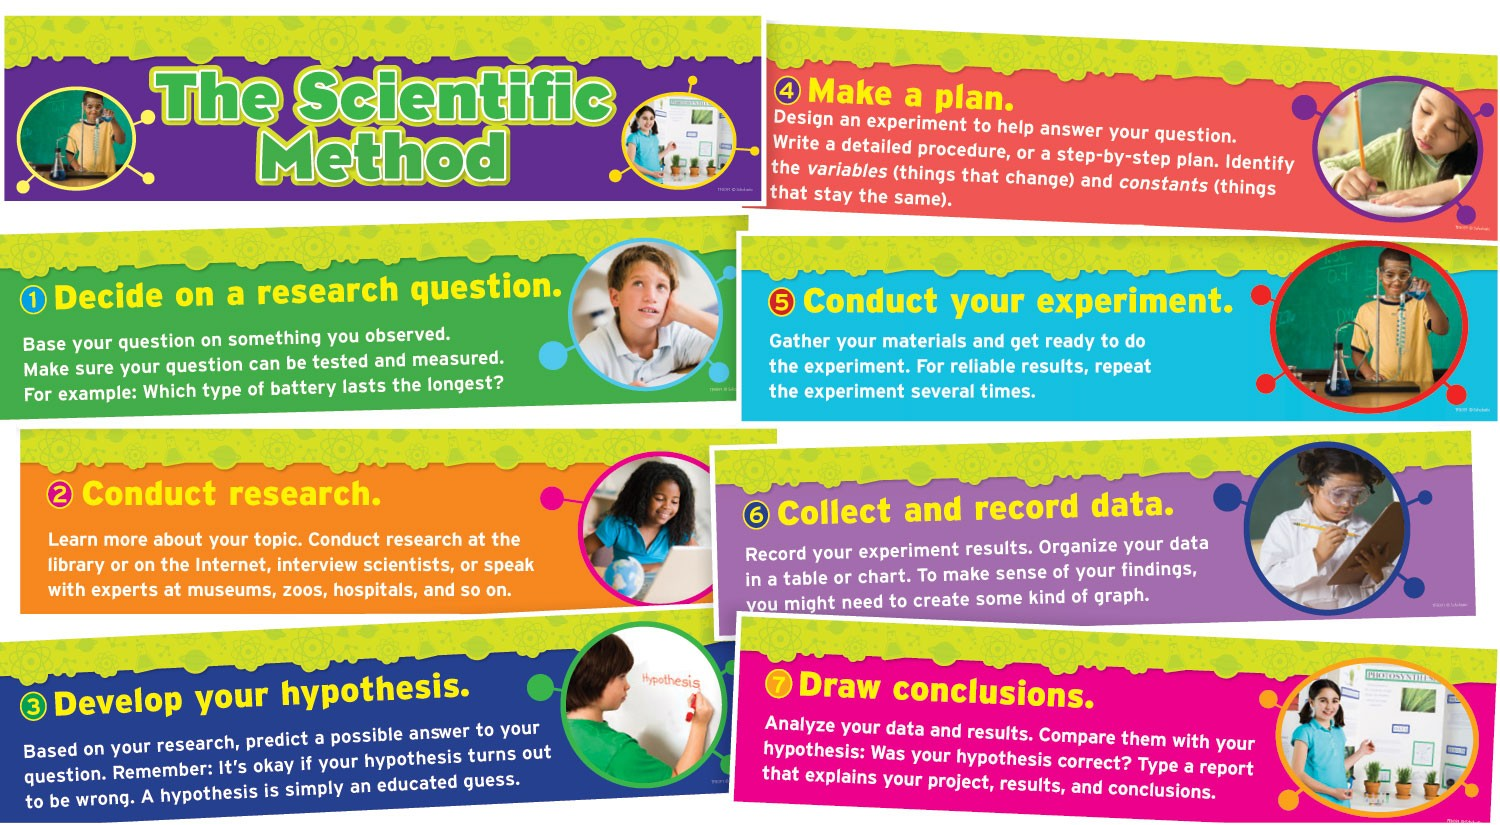 The Steps For Scientific Method